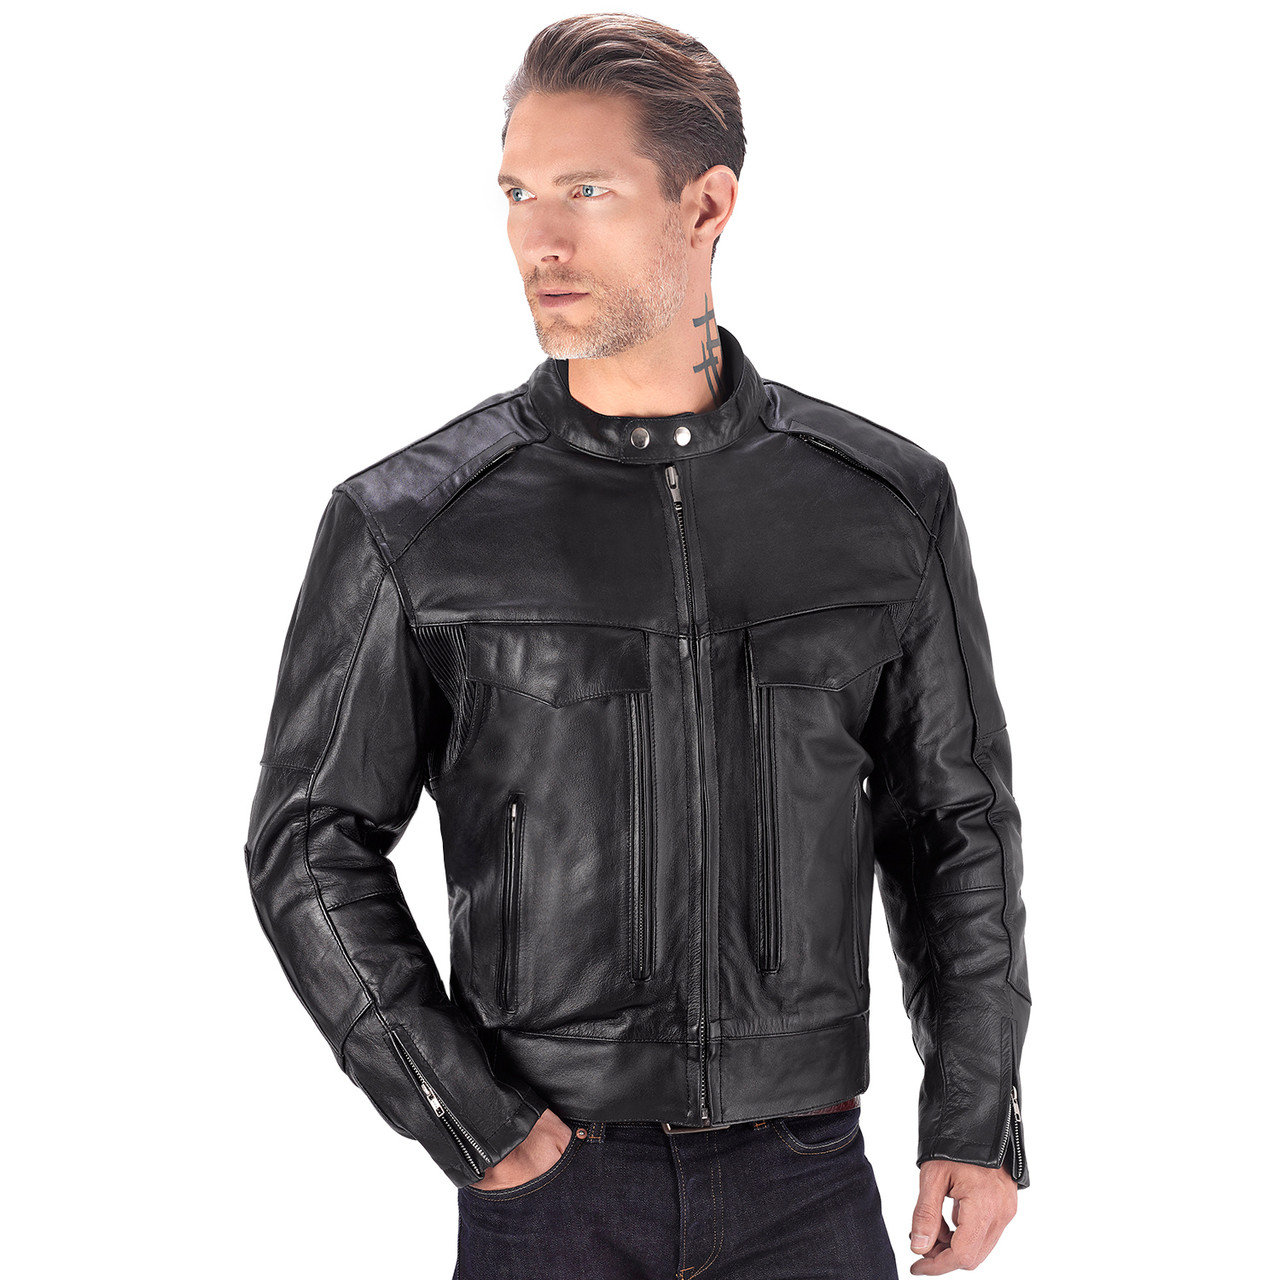 Viking Cycle Skeid Leather Jacket for Men - Motorcycle House